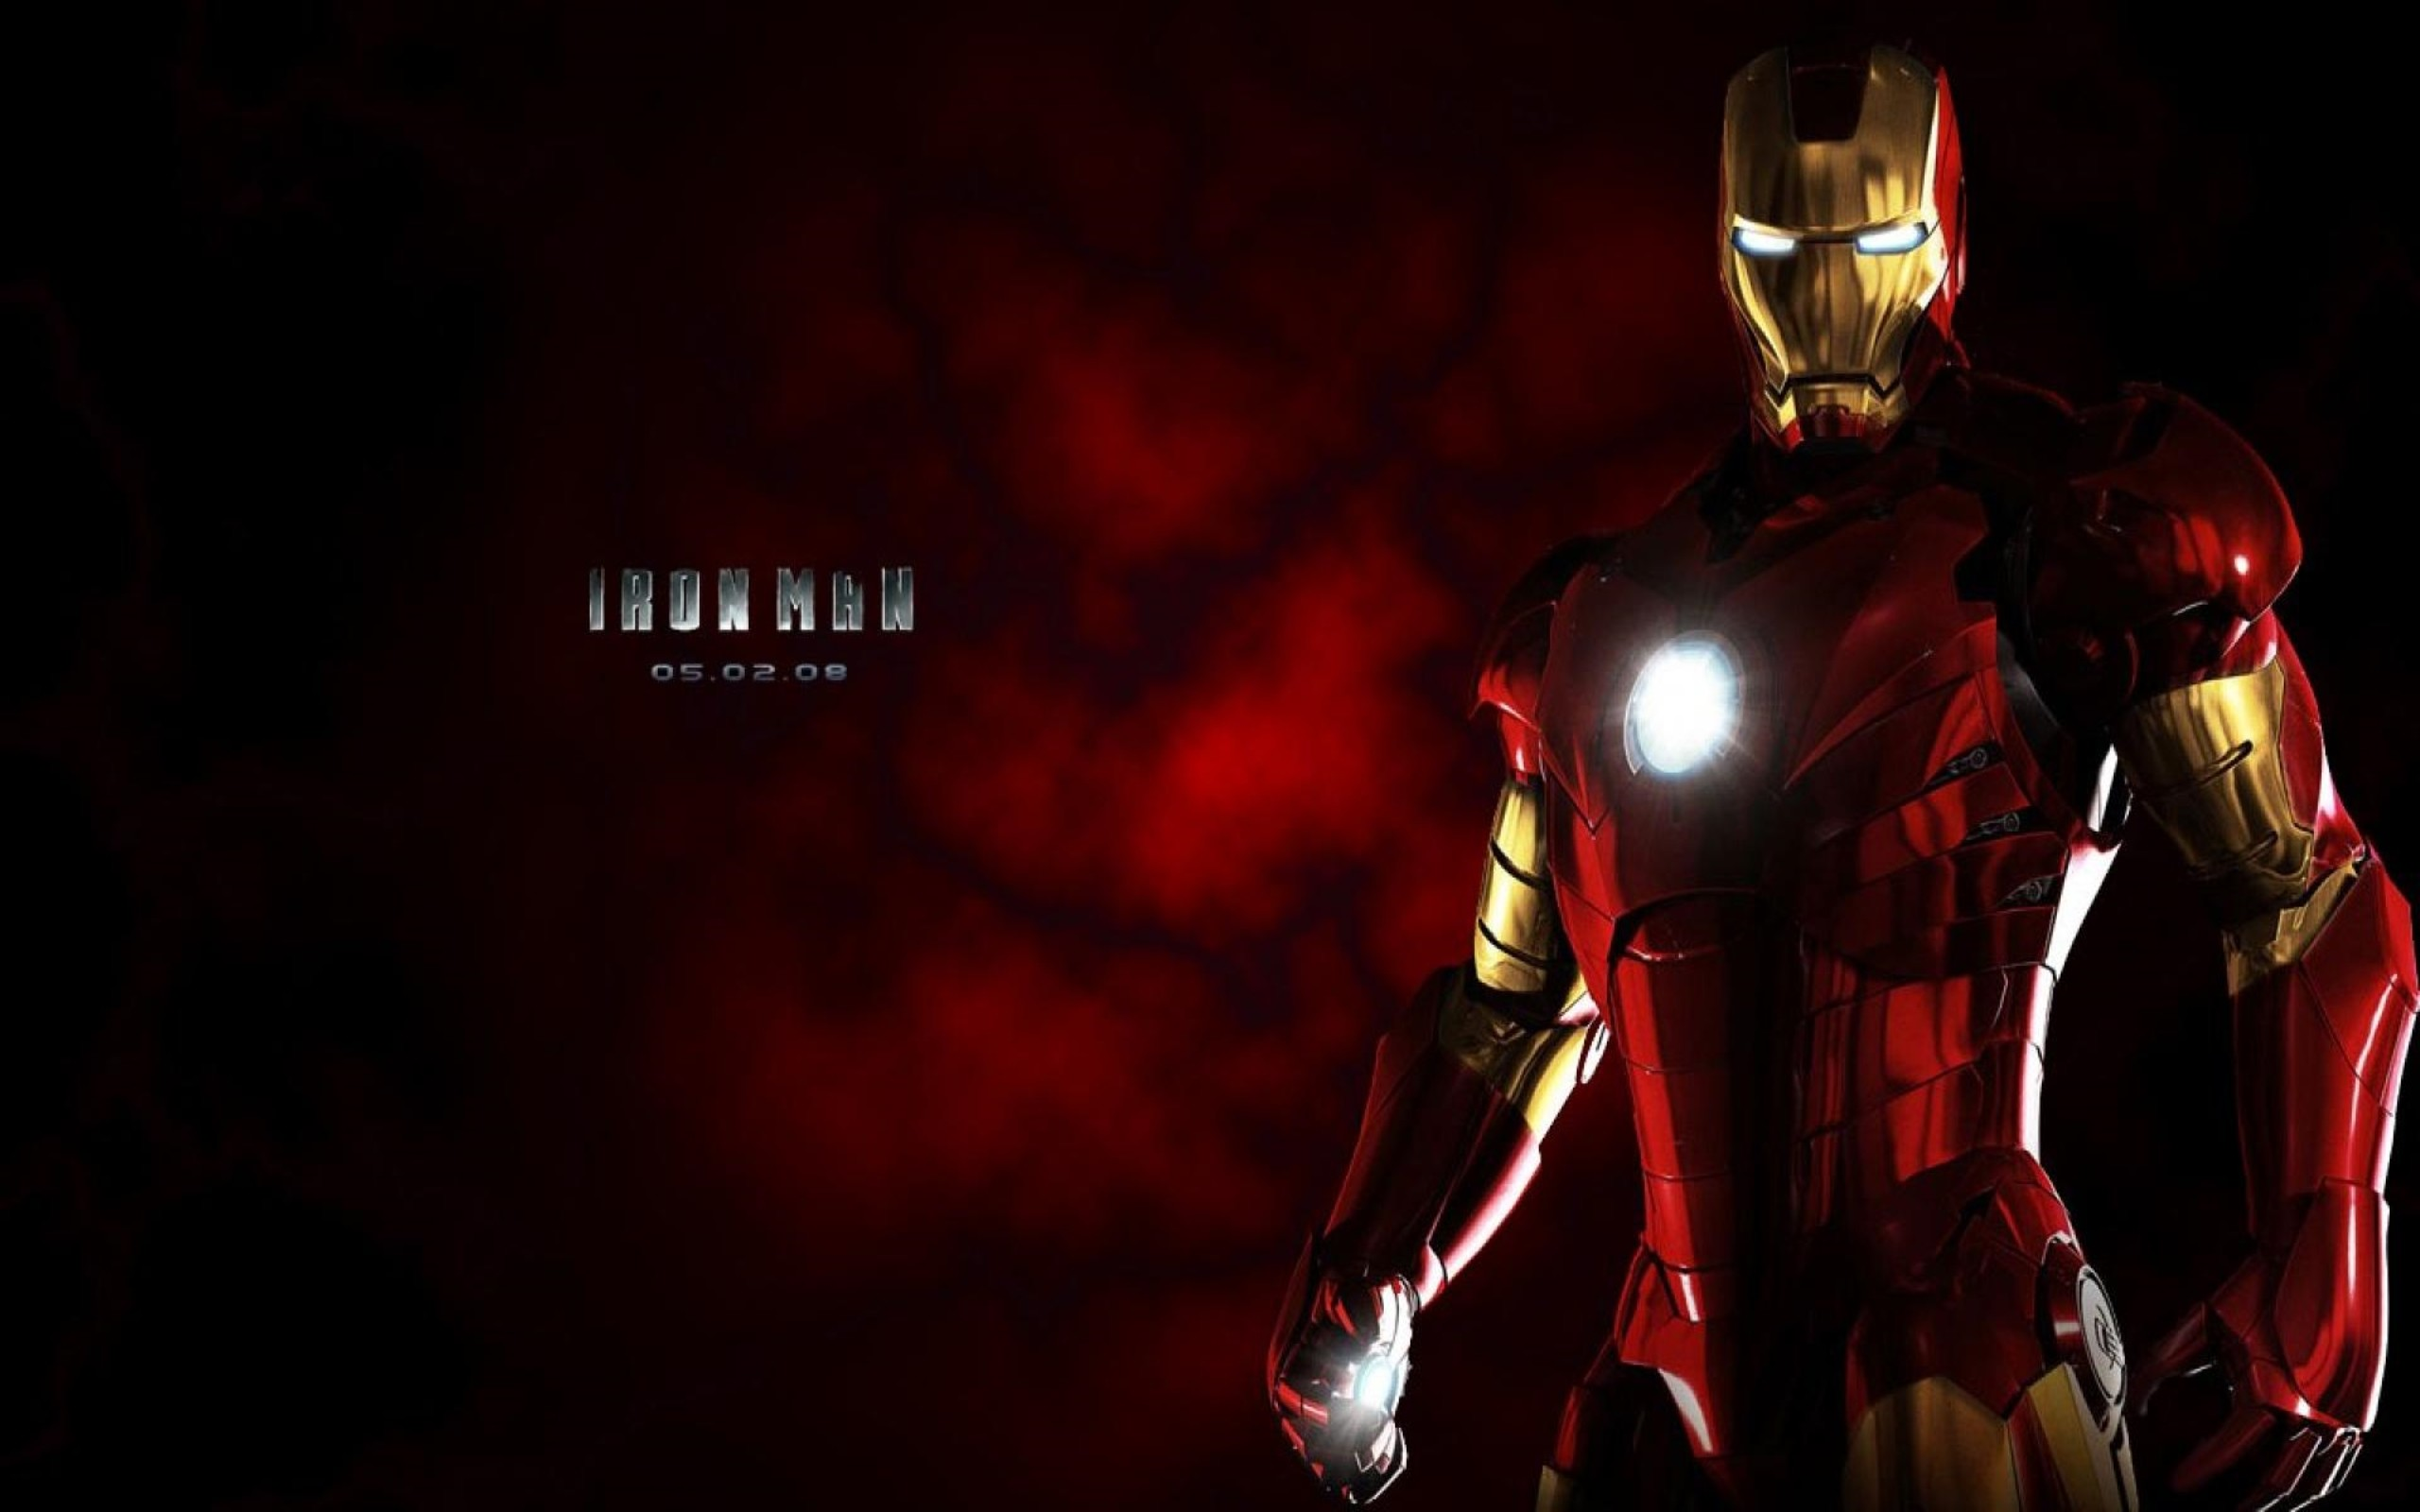 Iron Man Desktop Background Hd Simplexpict1storg